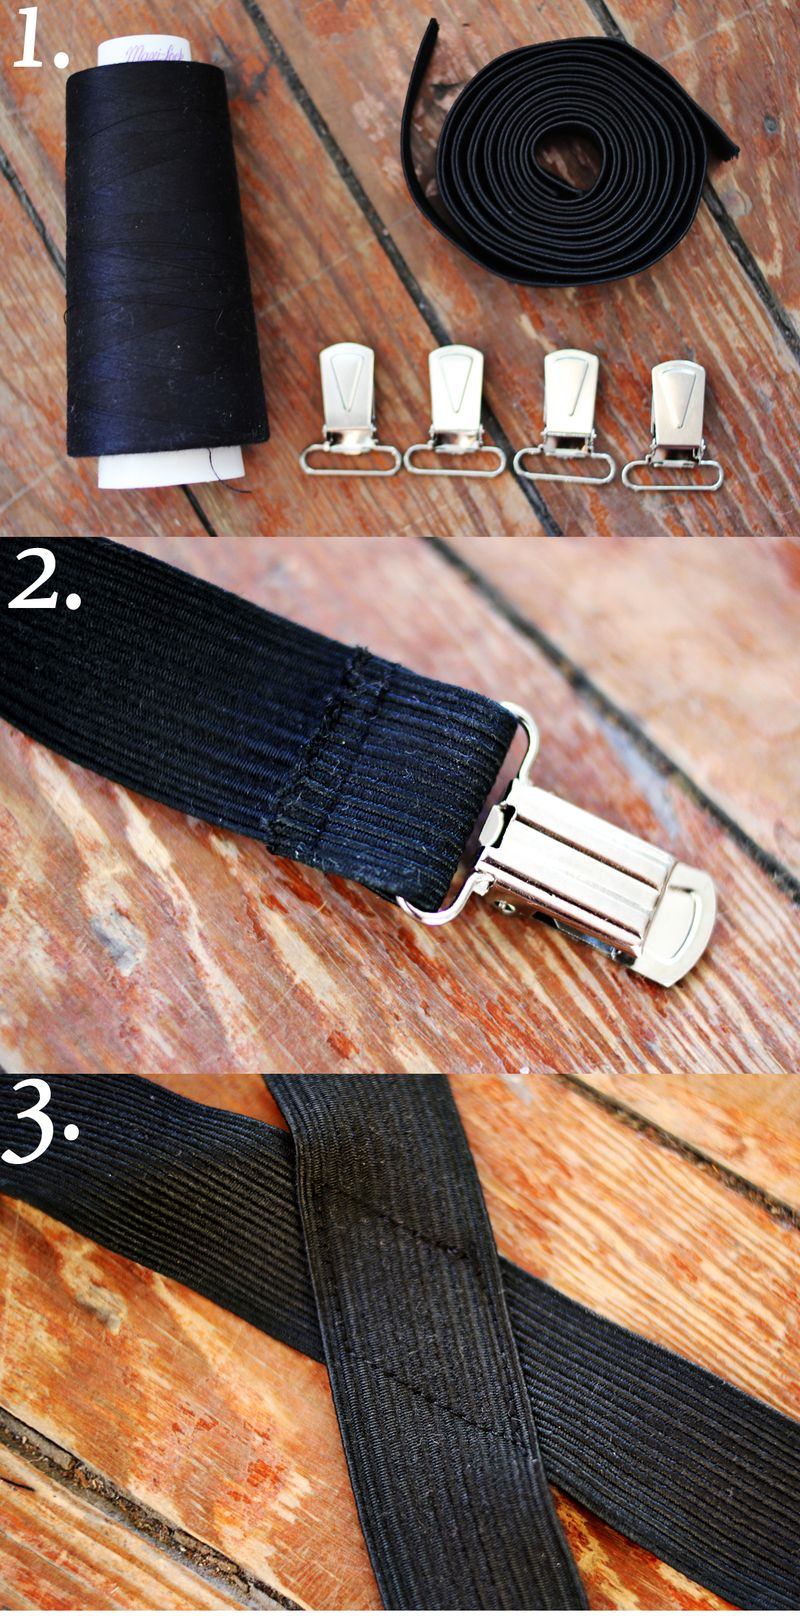 Suspenders steps